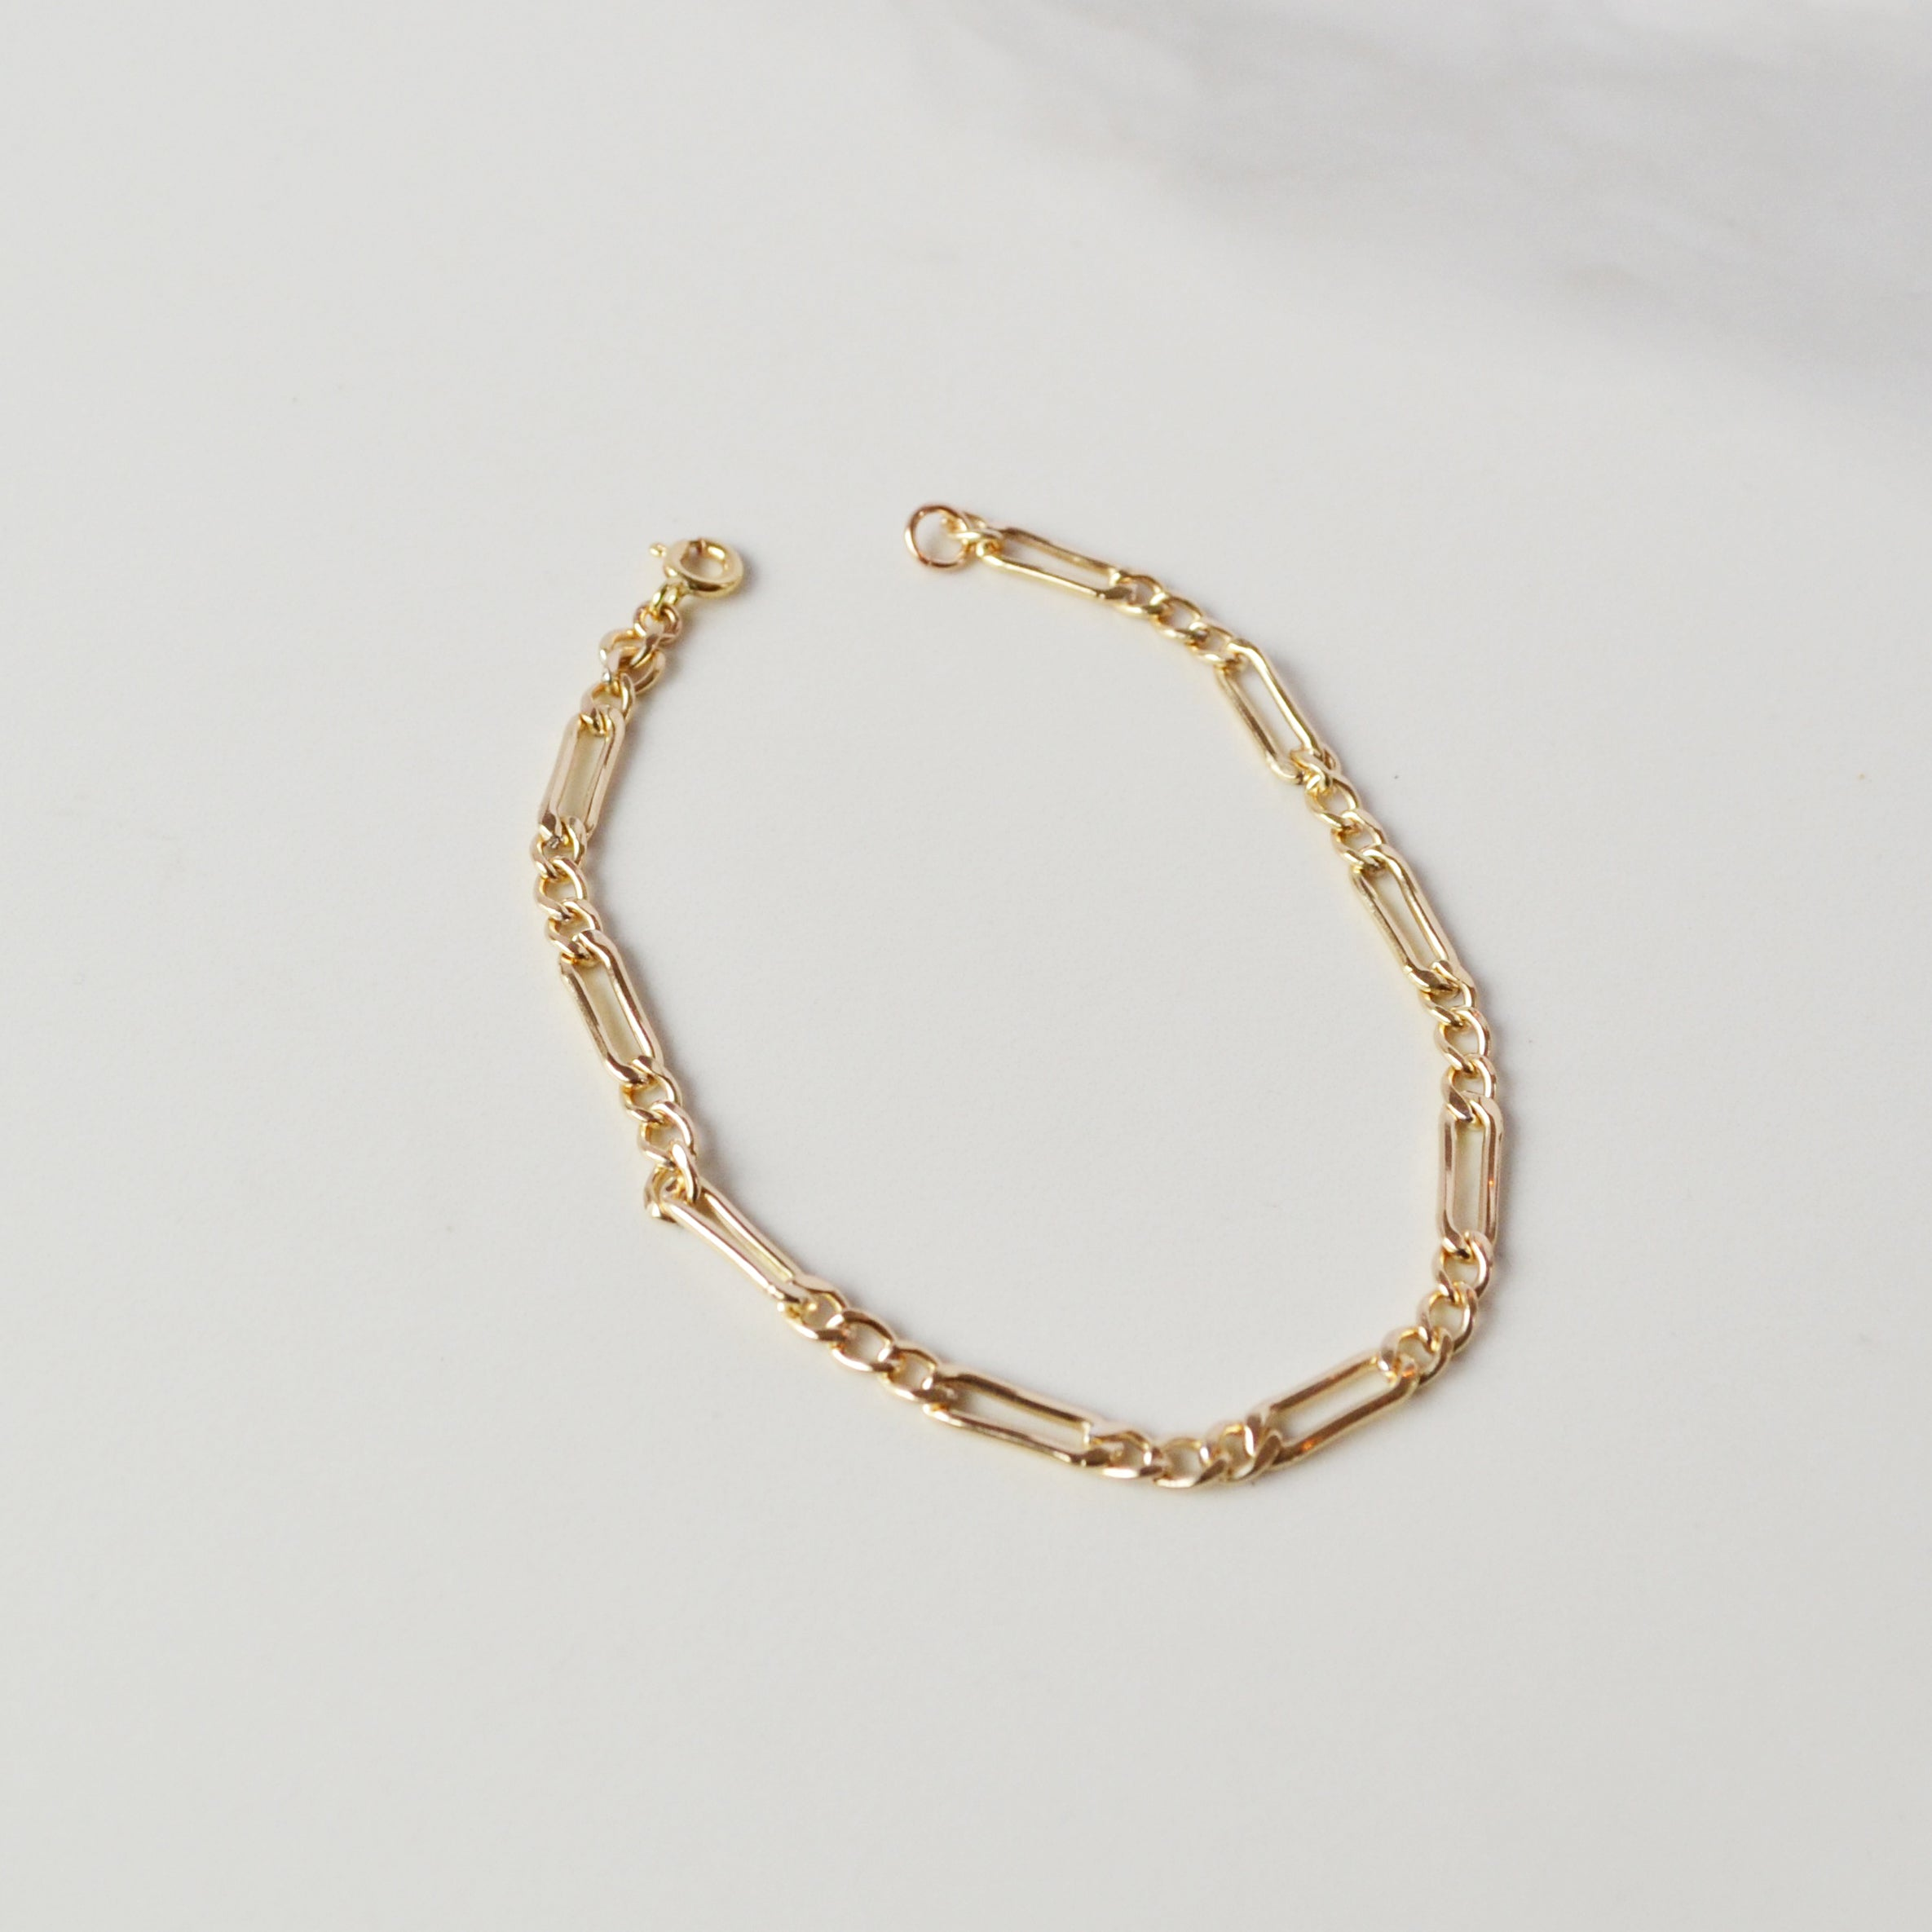 Stallion Chain Bracelet, Gold or Silver